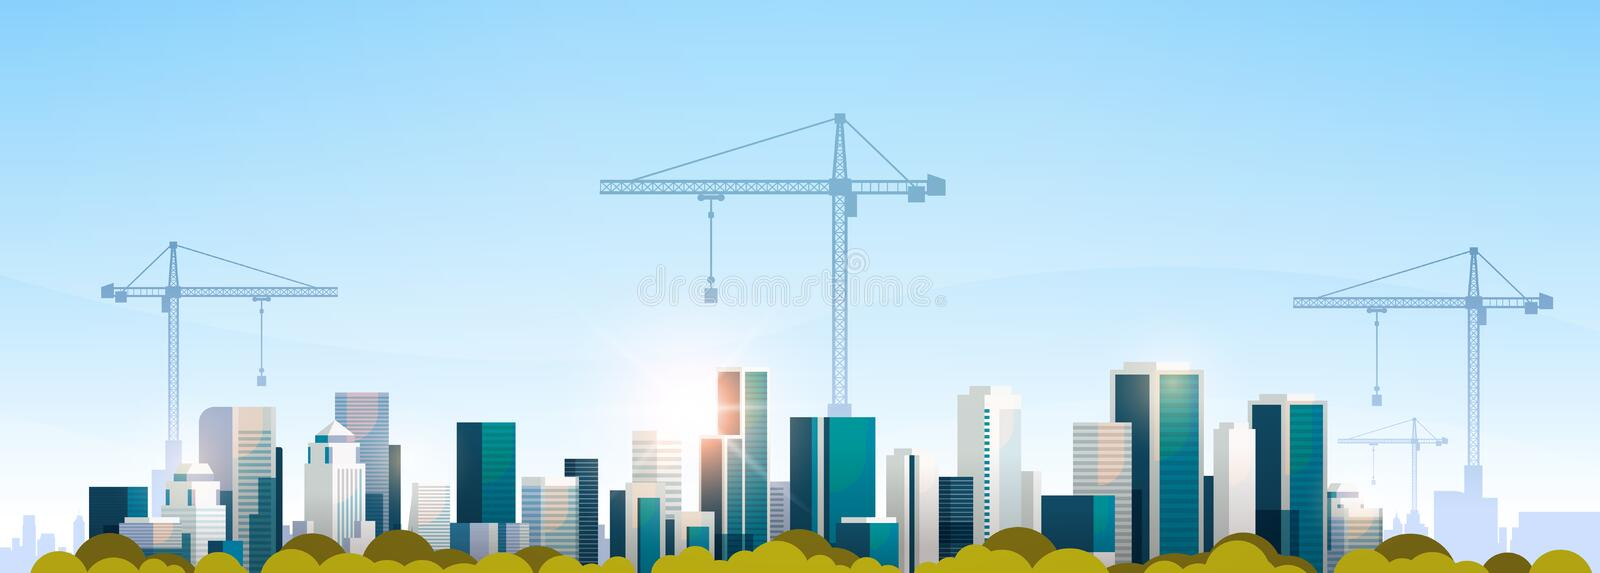 Grues à tour modernes de chantier de construction de ville construisant l'appartement de fond d'horizon de coucher du soleil de p illustration stock